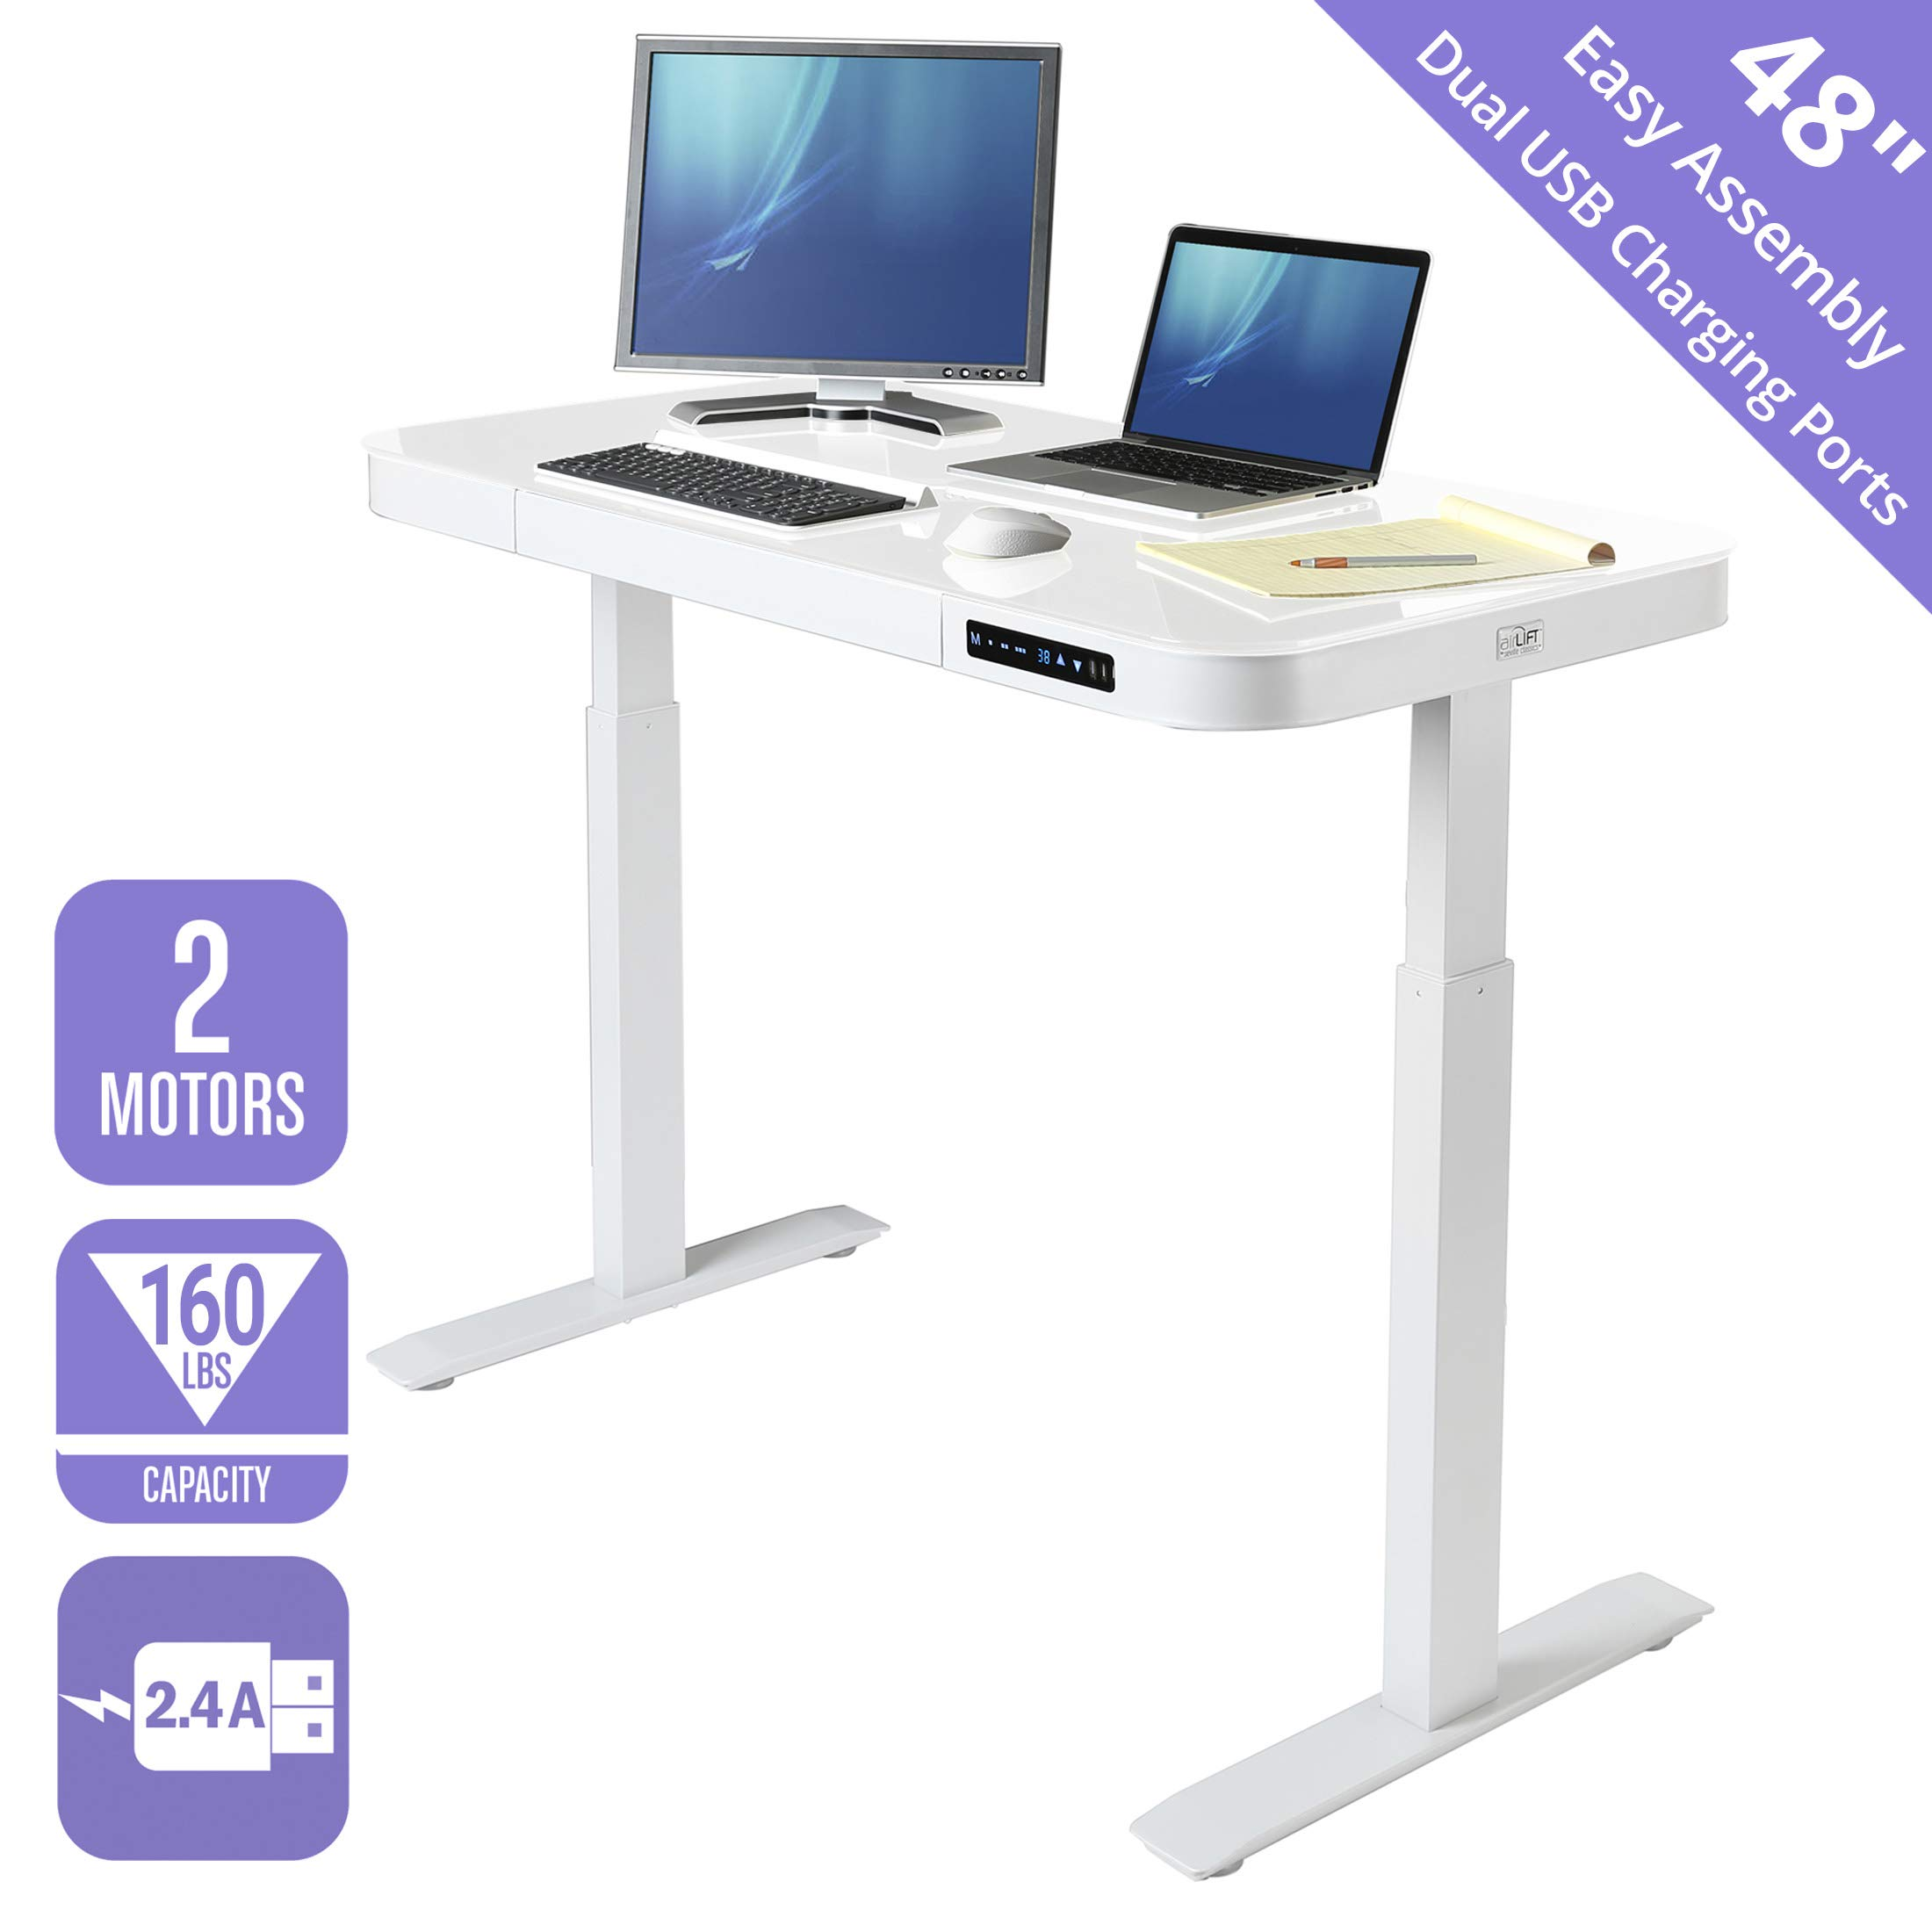 Seville Classics OFF65873 Airlift Tempered Glass Electric Standing Desk with Drawer, 2.4A USB Ports, 3 Memory Buttons (Max. Height 47'') Dual Motors, White Top, White, White by Seville Classics